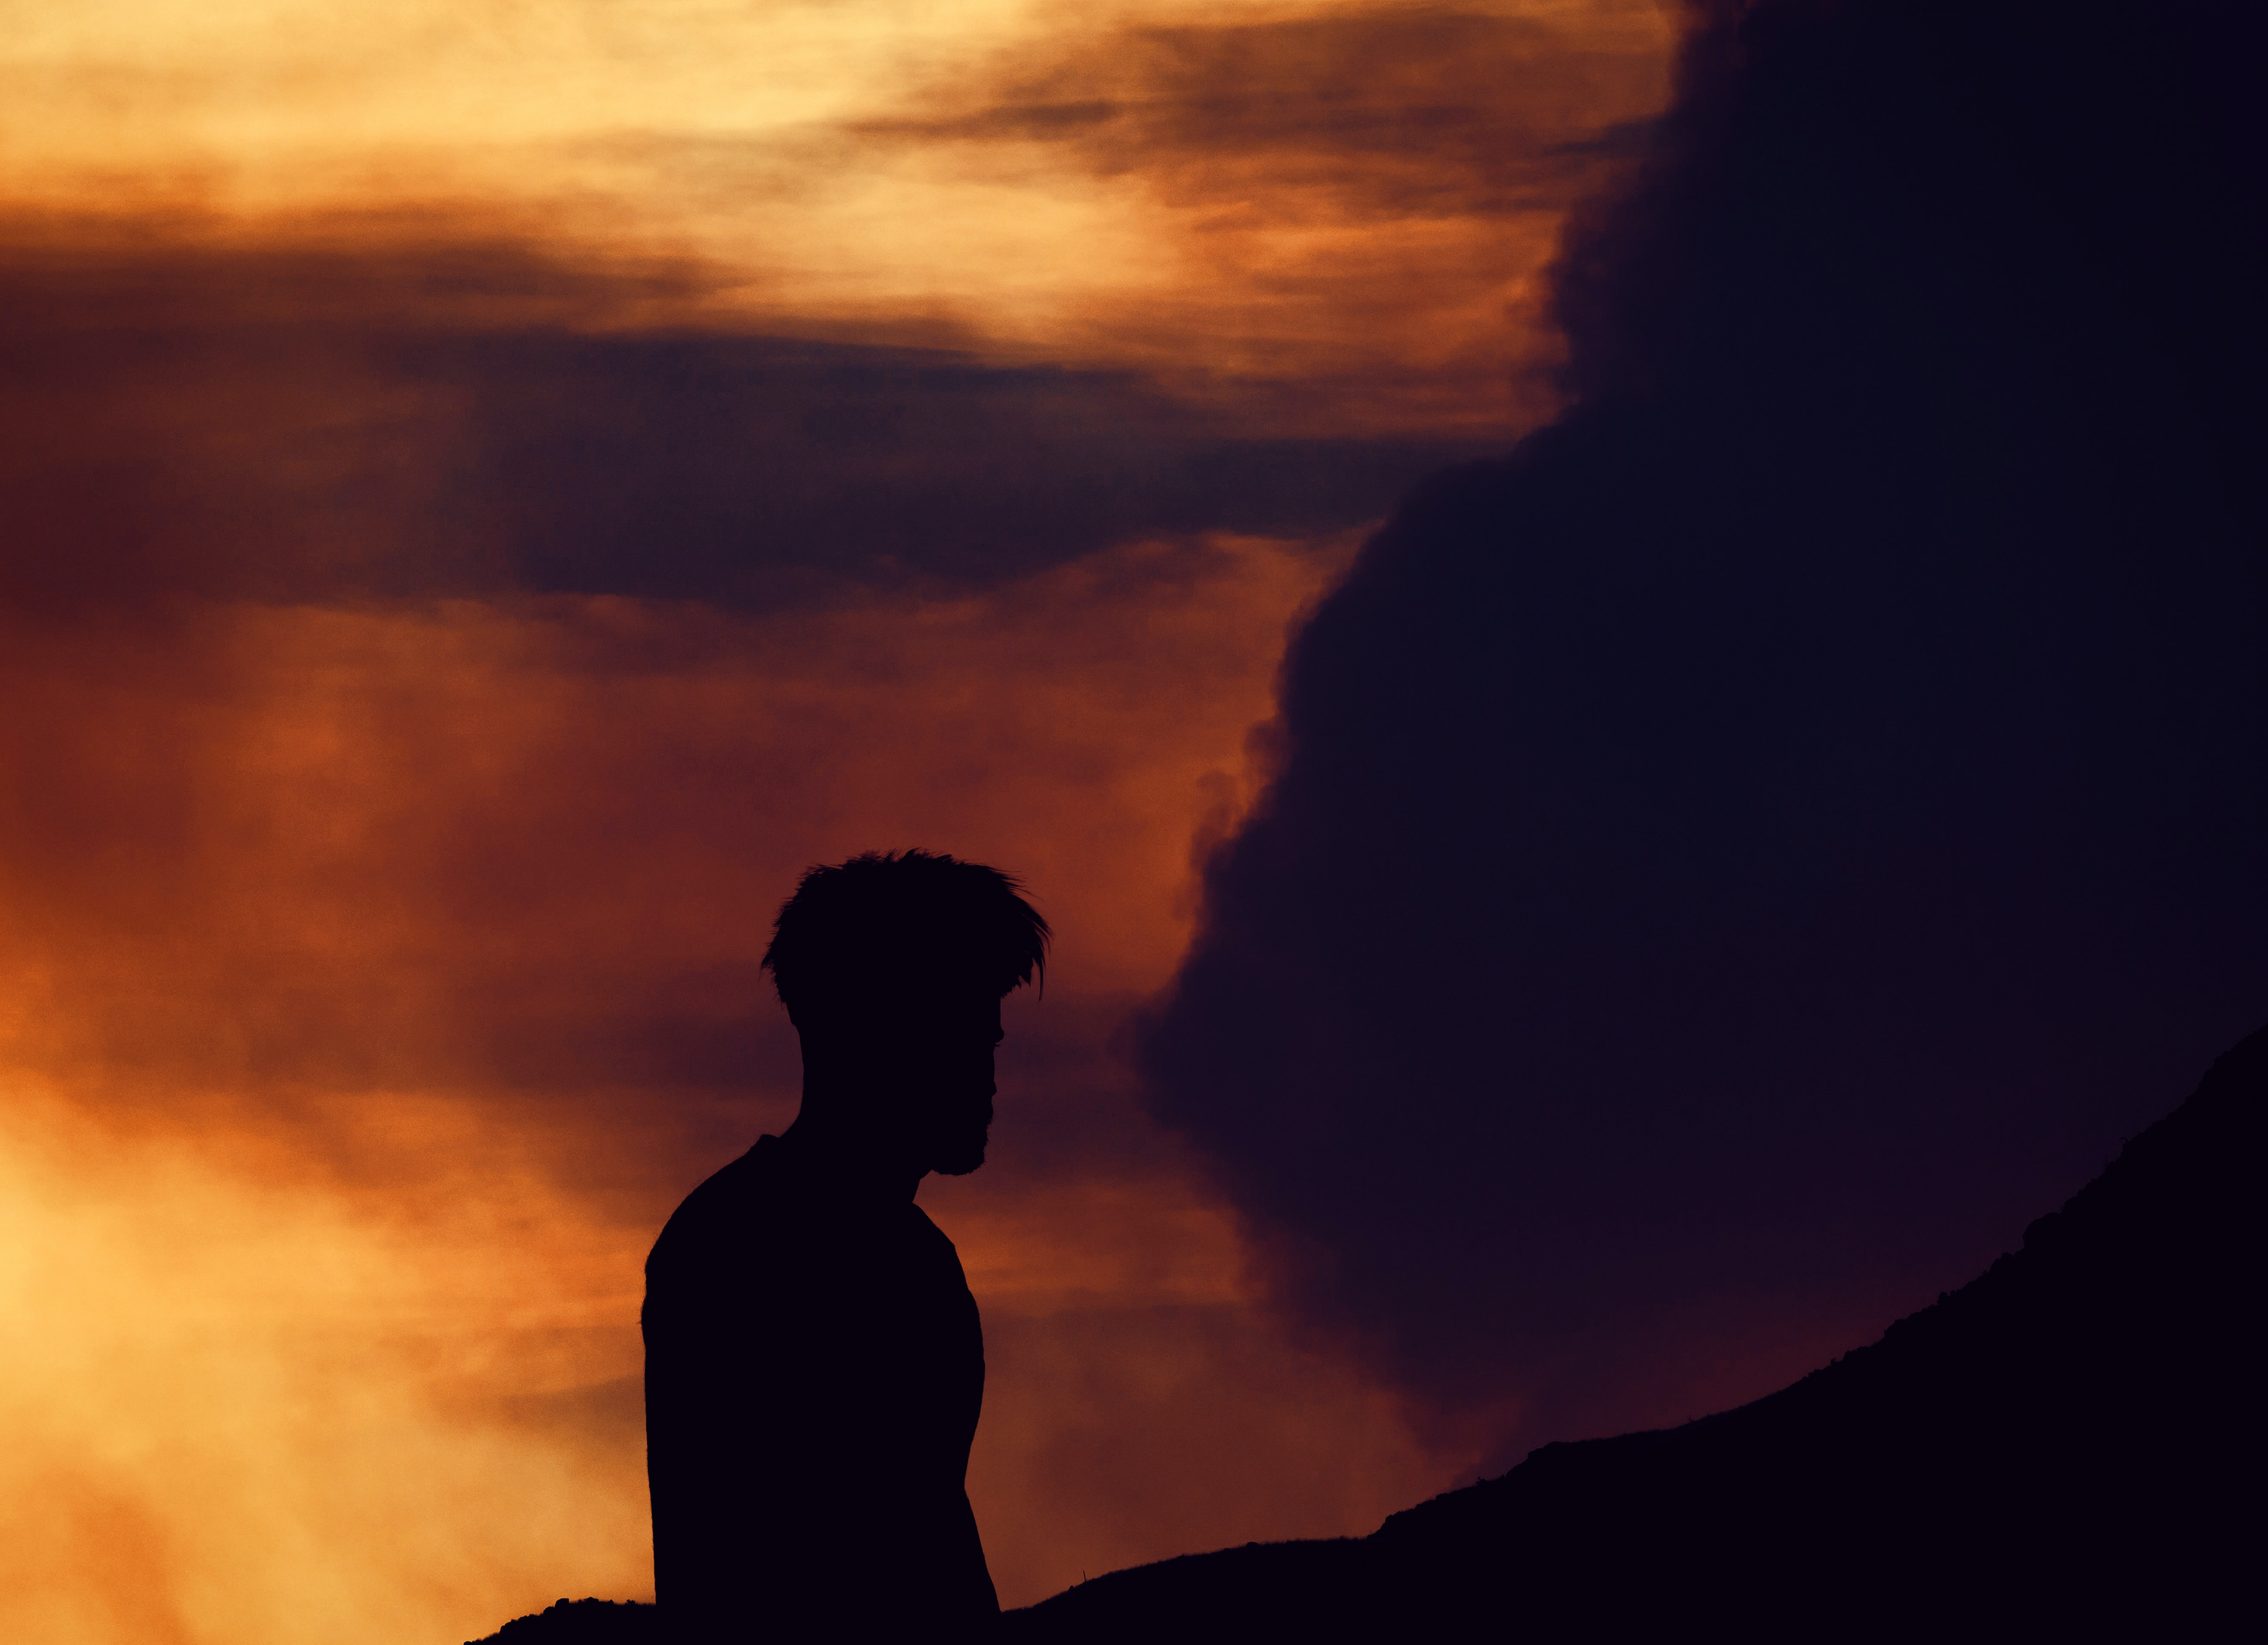 silhouette photo of man near body of water